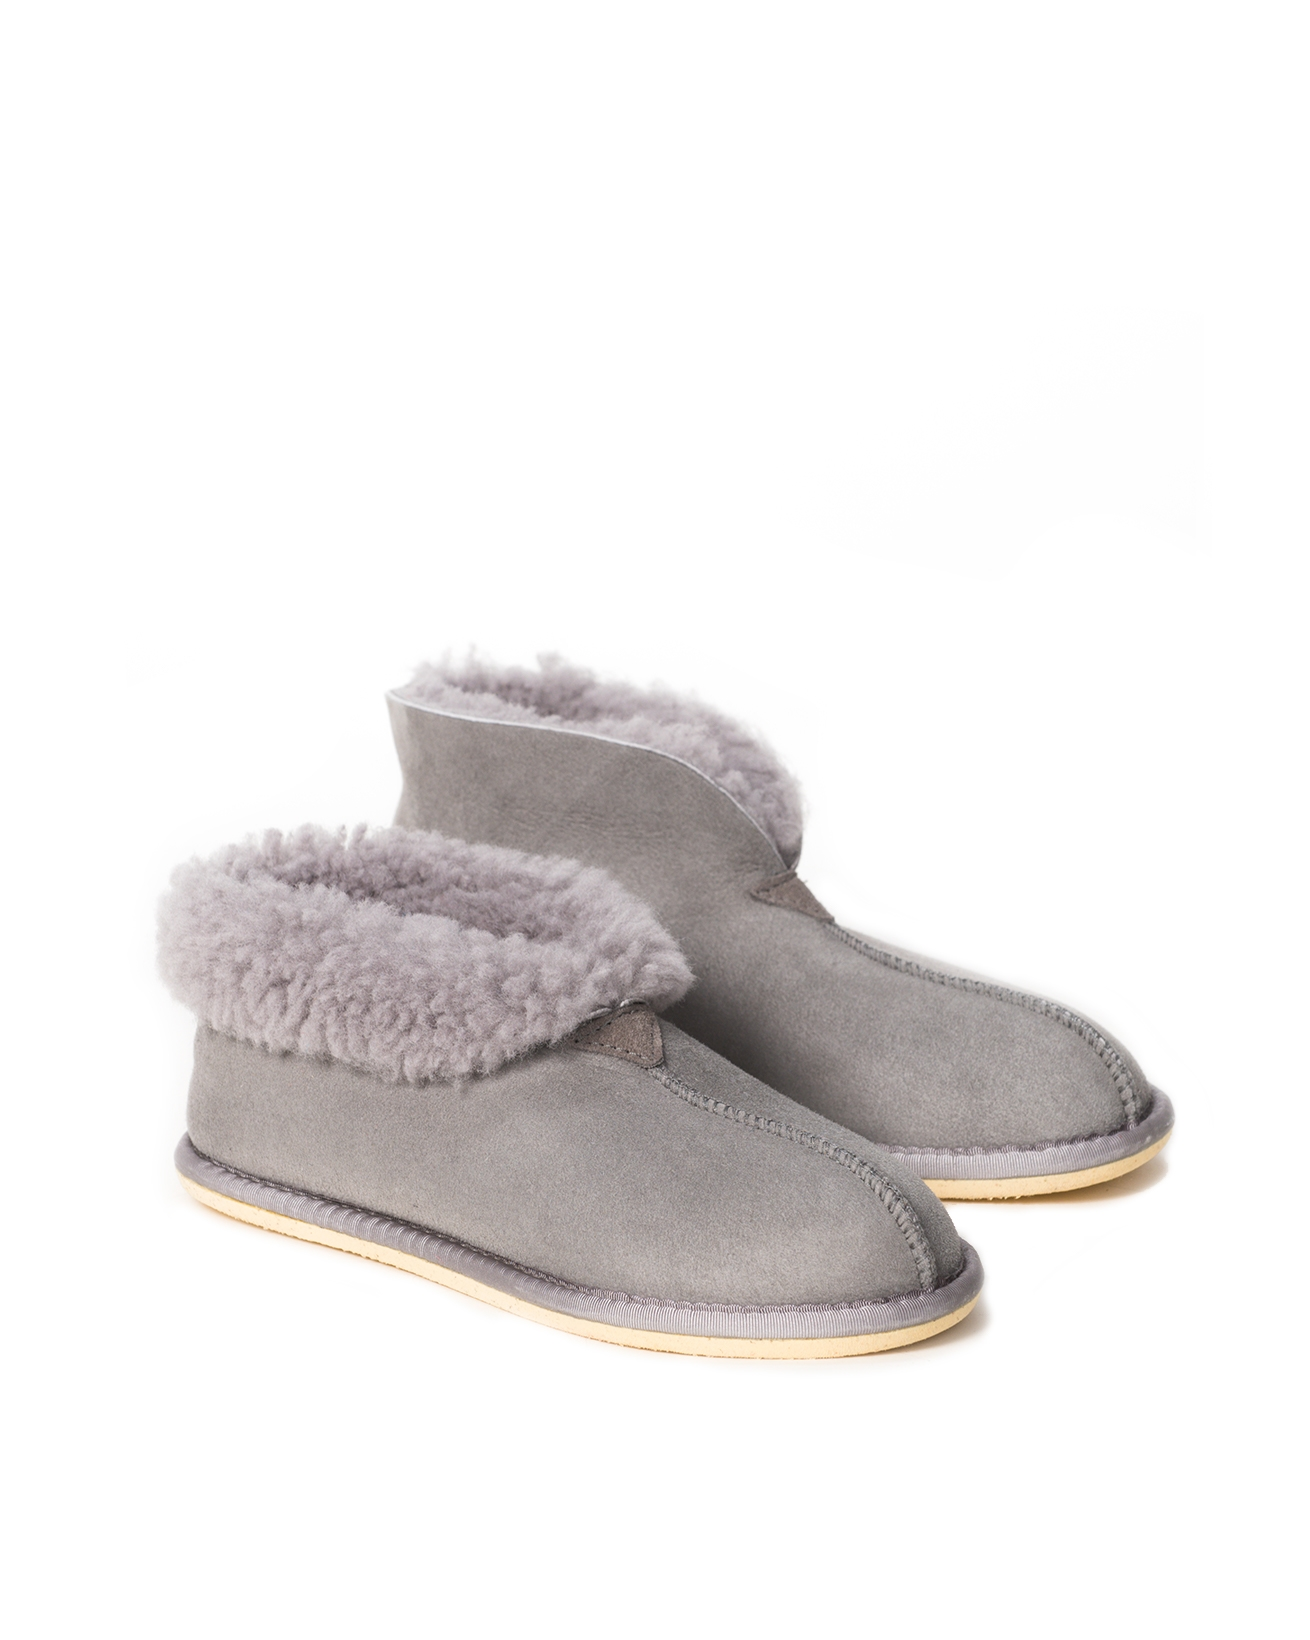 Ladies' Shearling Bootee Slippers